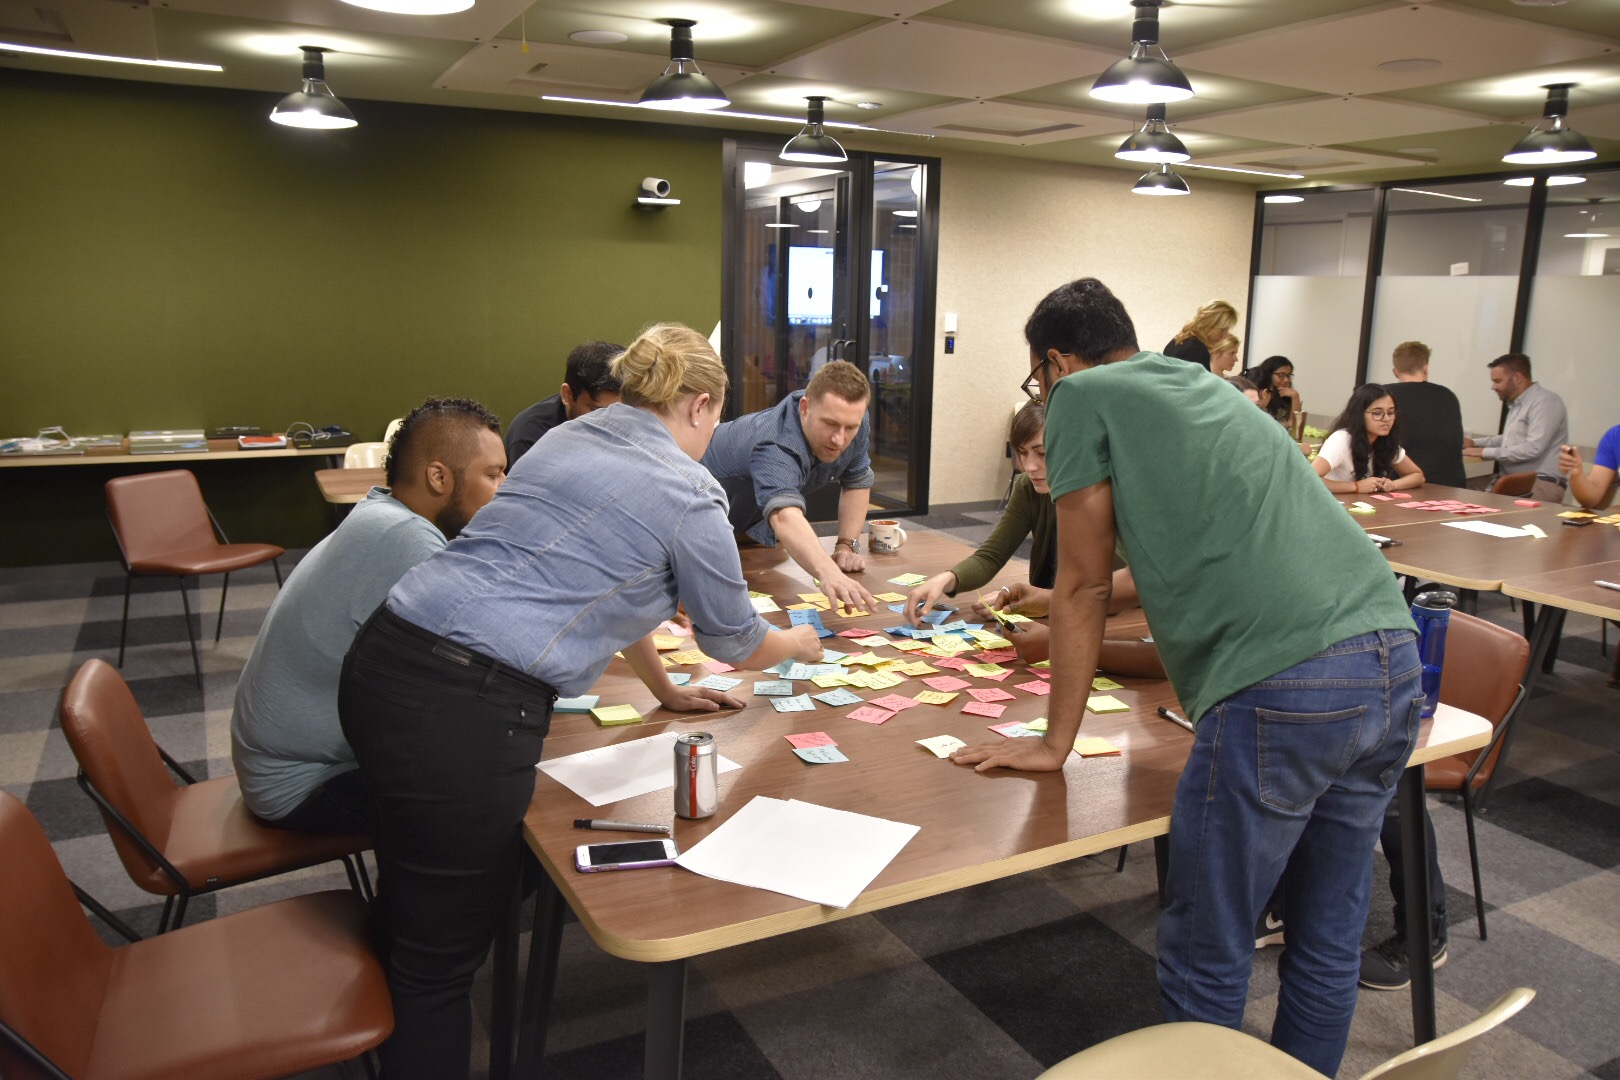 Workshop participants standing and collaborating around a table with lots of sticky notes on the table.